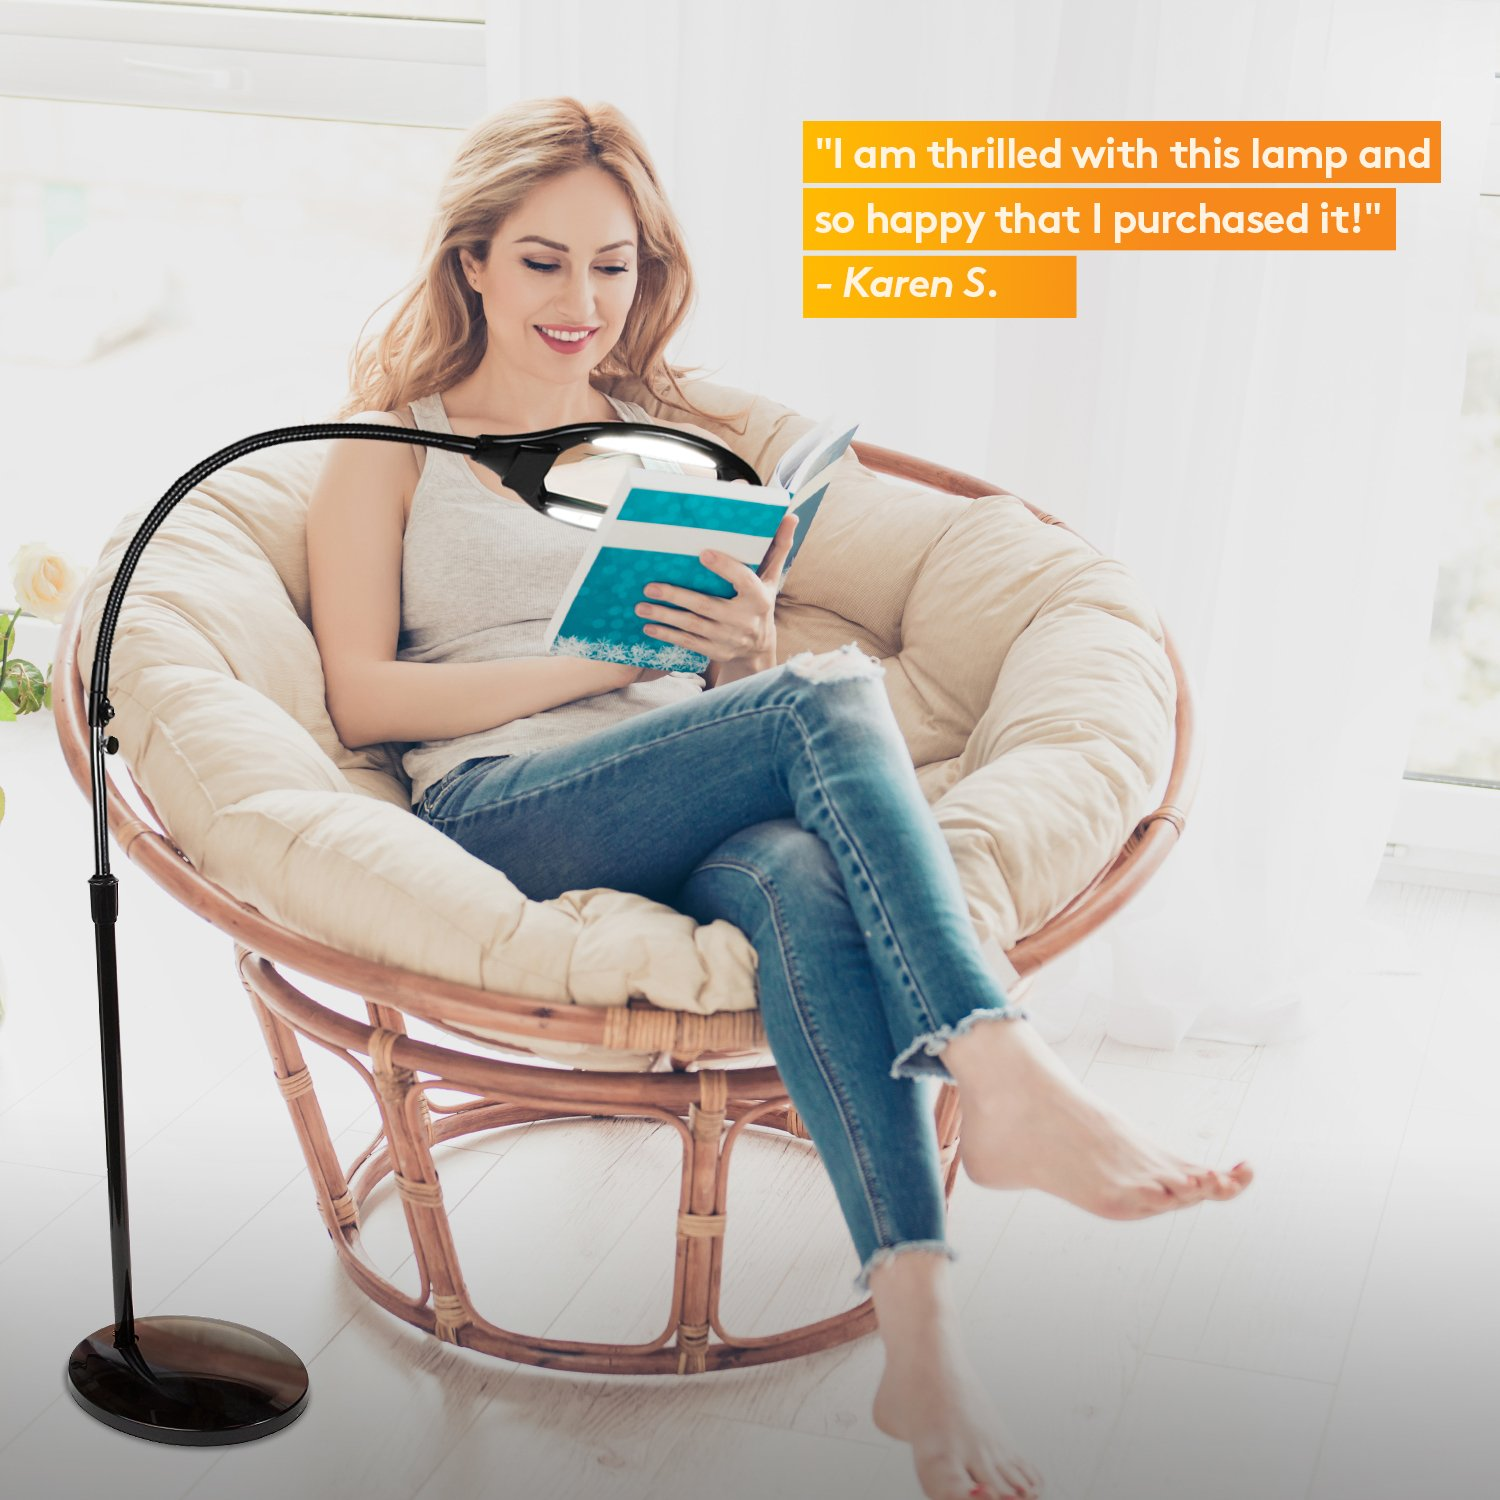 Brightech LightView Pro LED Magnifying Glass Floor Lamp - Magnifier With Bright Light For Reading, Tasks & Crafts - Height Adjustable Gooseneck Standing Lighting - Black by Brightech (Image #2)